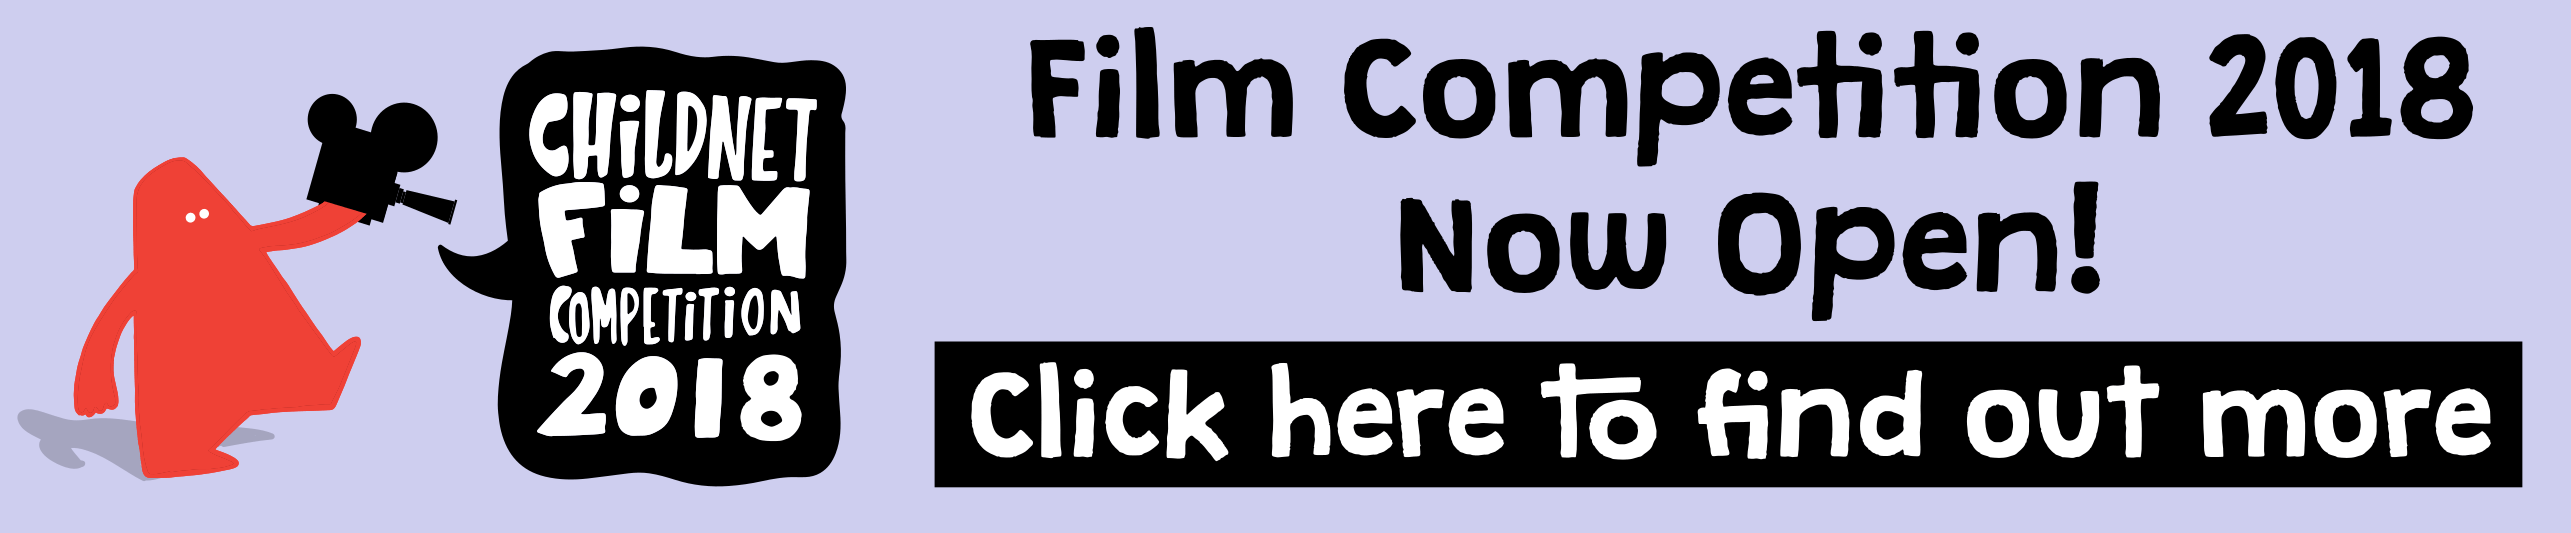 Childnet call on young people to 'Connect with respect' and enter their Film Competition